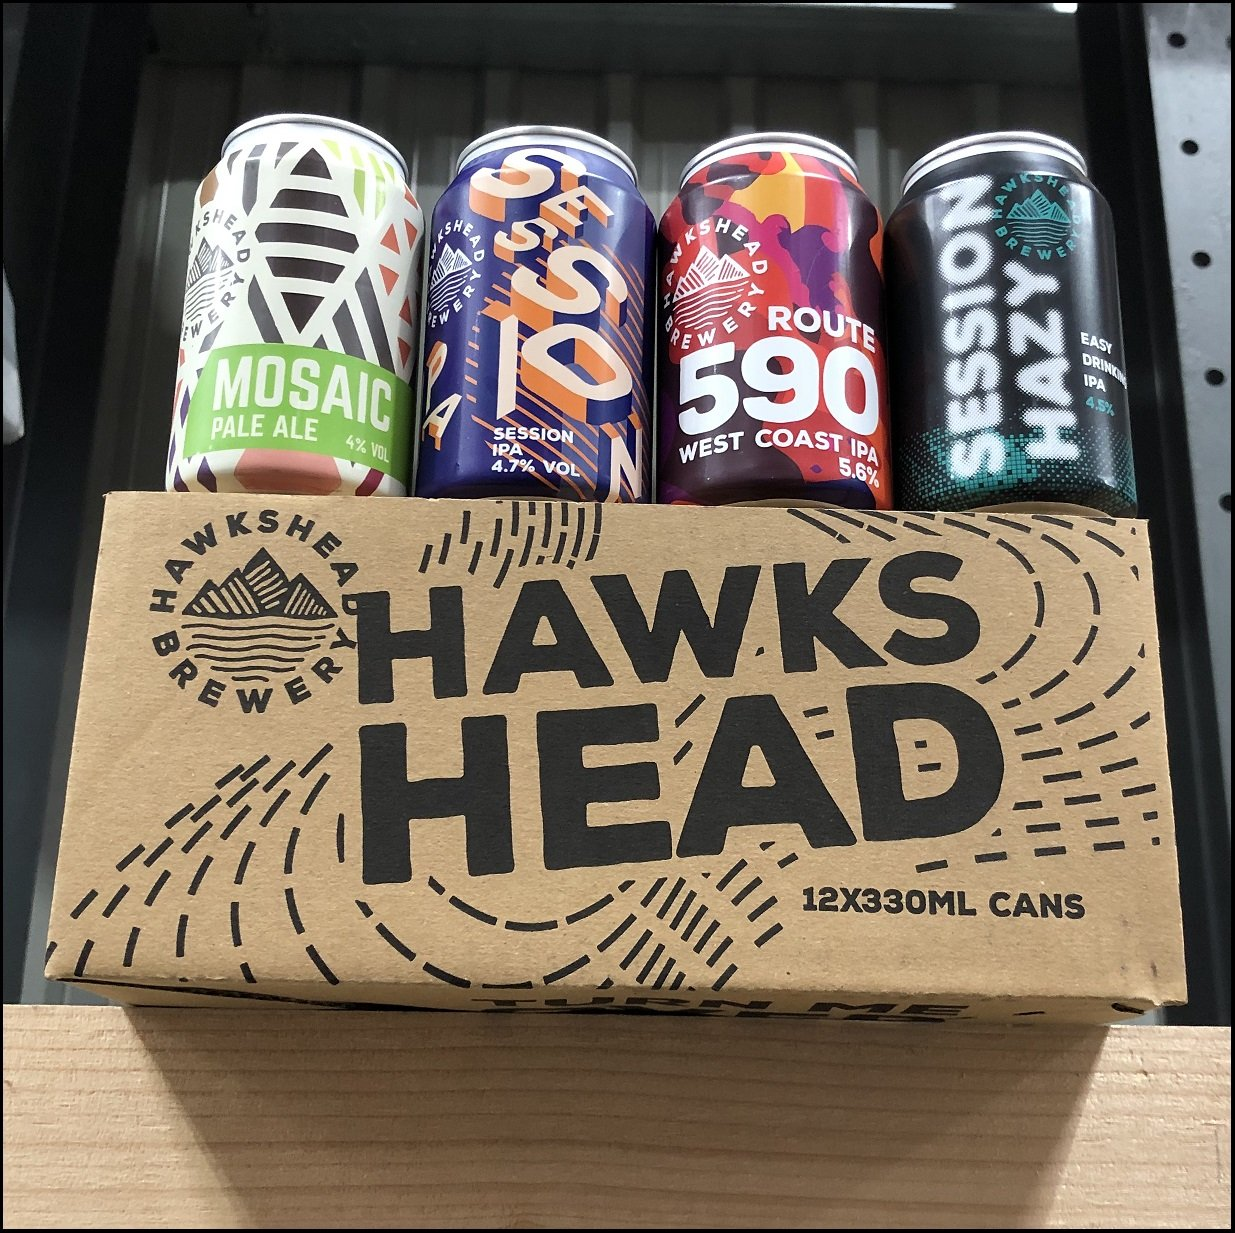 Hawkshead Brewery - Mixed Can Case